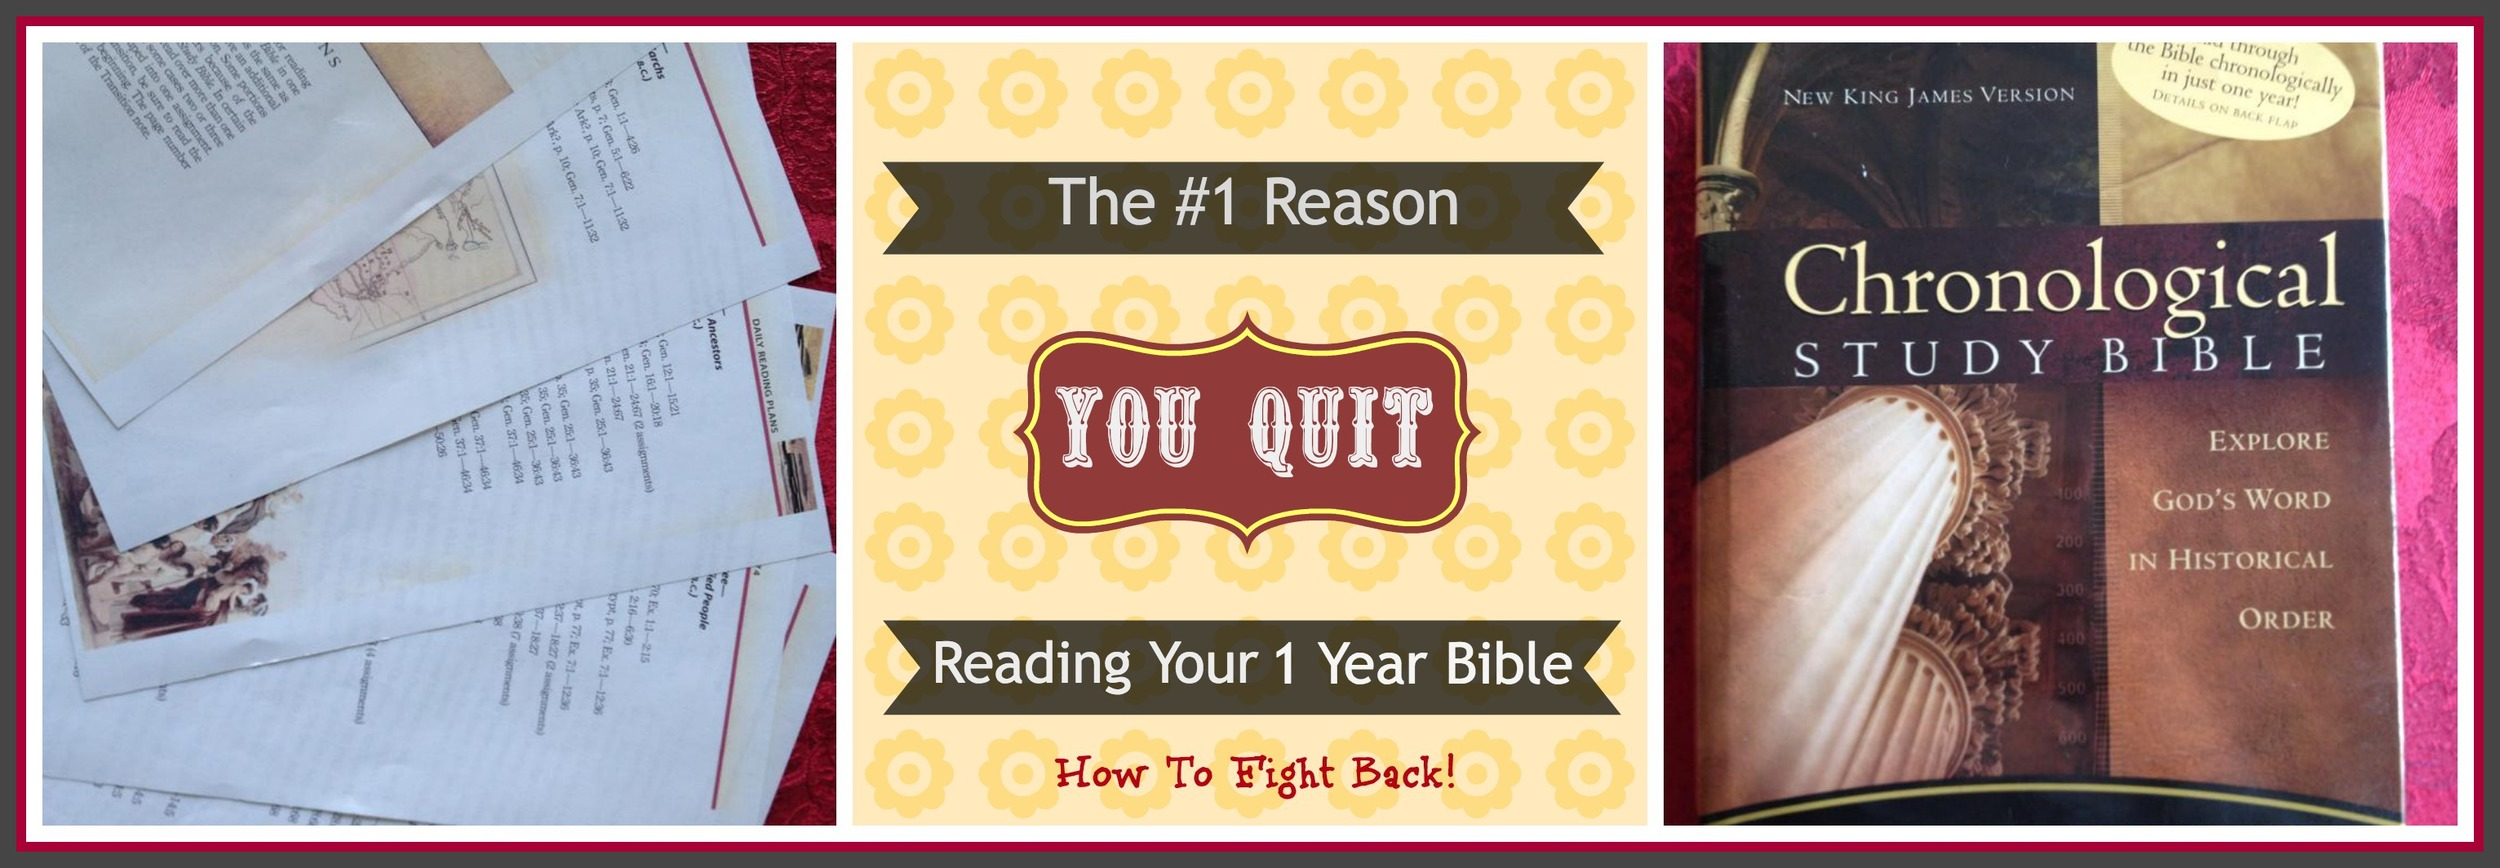 The #1 Reason You Stop Reading Your One-Year-Bible How To Fight Back!.jpg.jpg